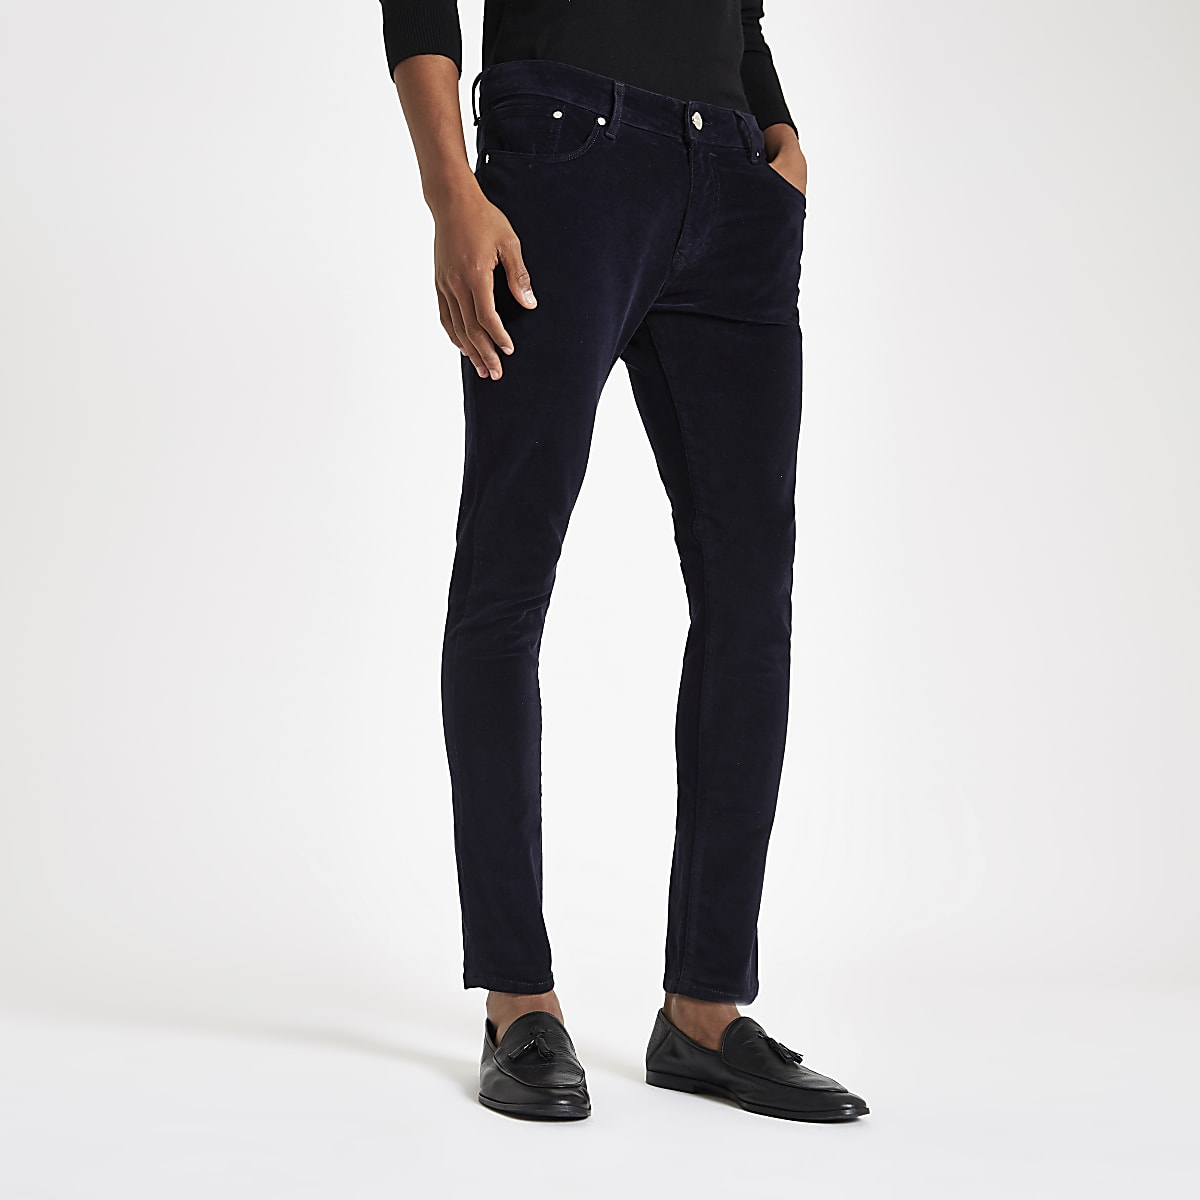 Navy Danny velvet super skinny trousers